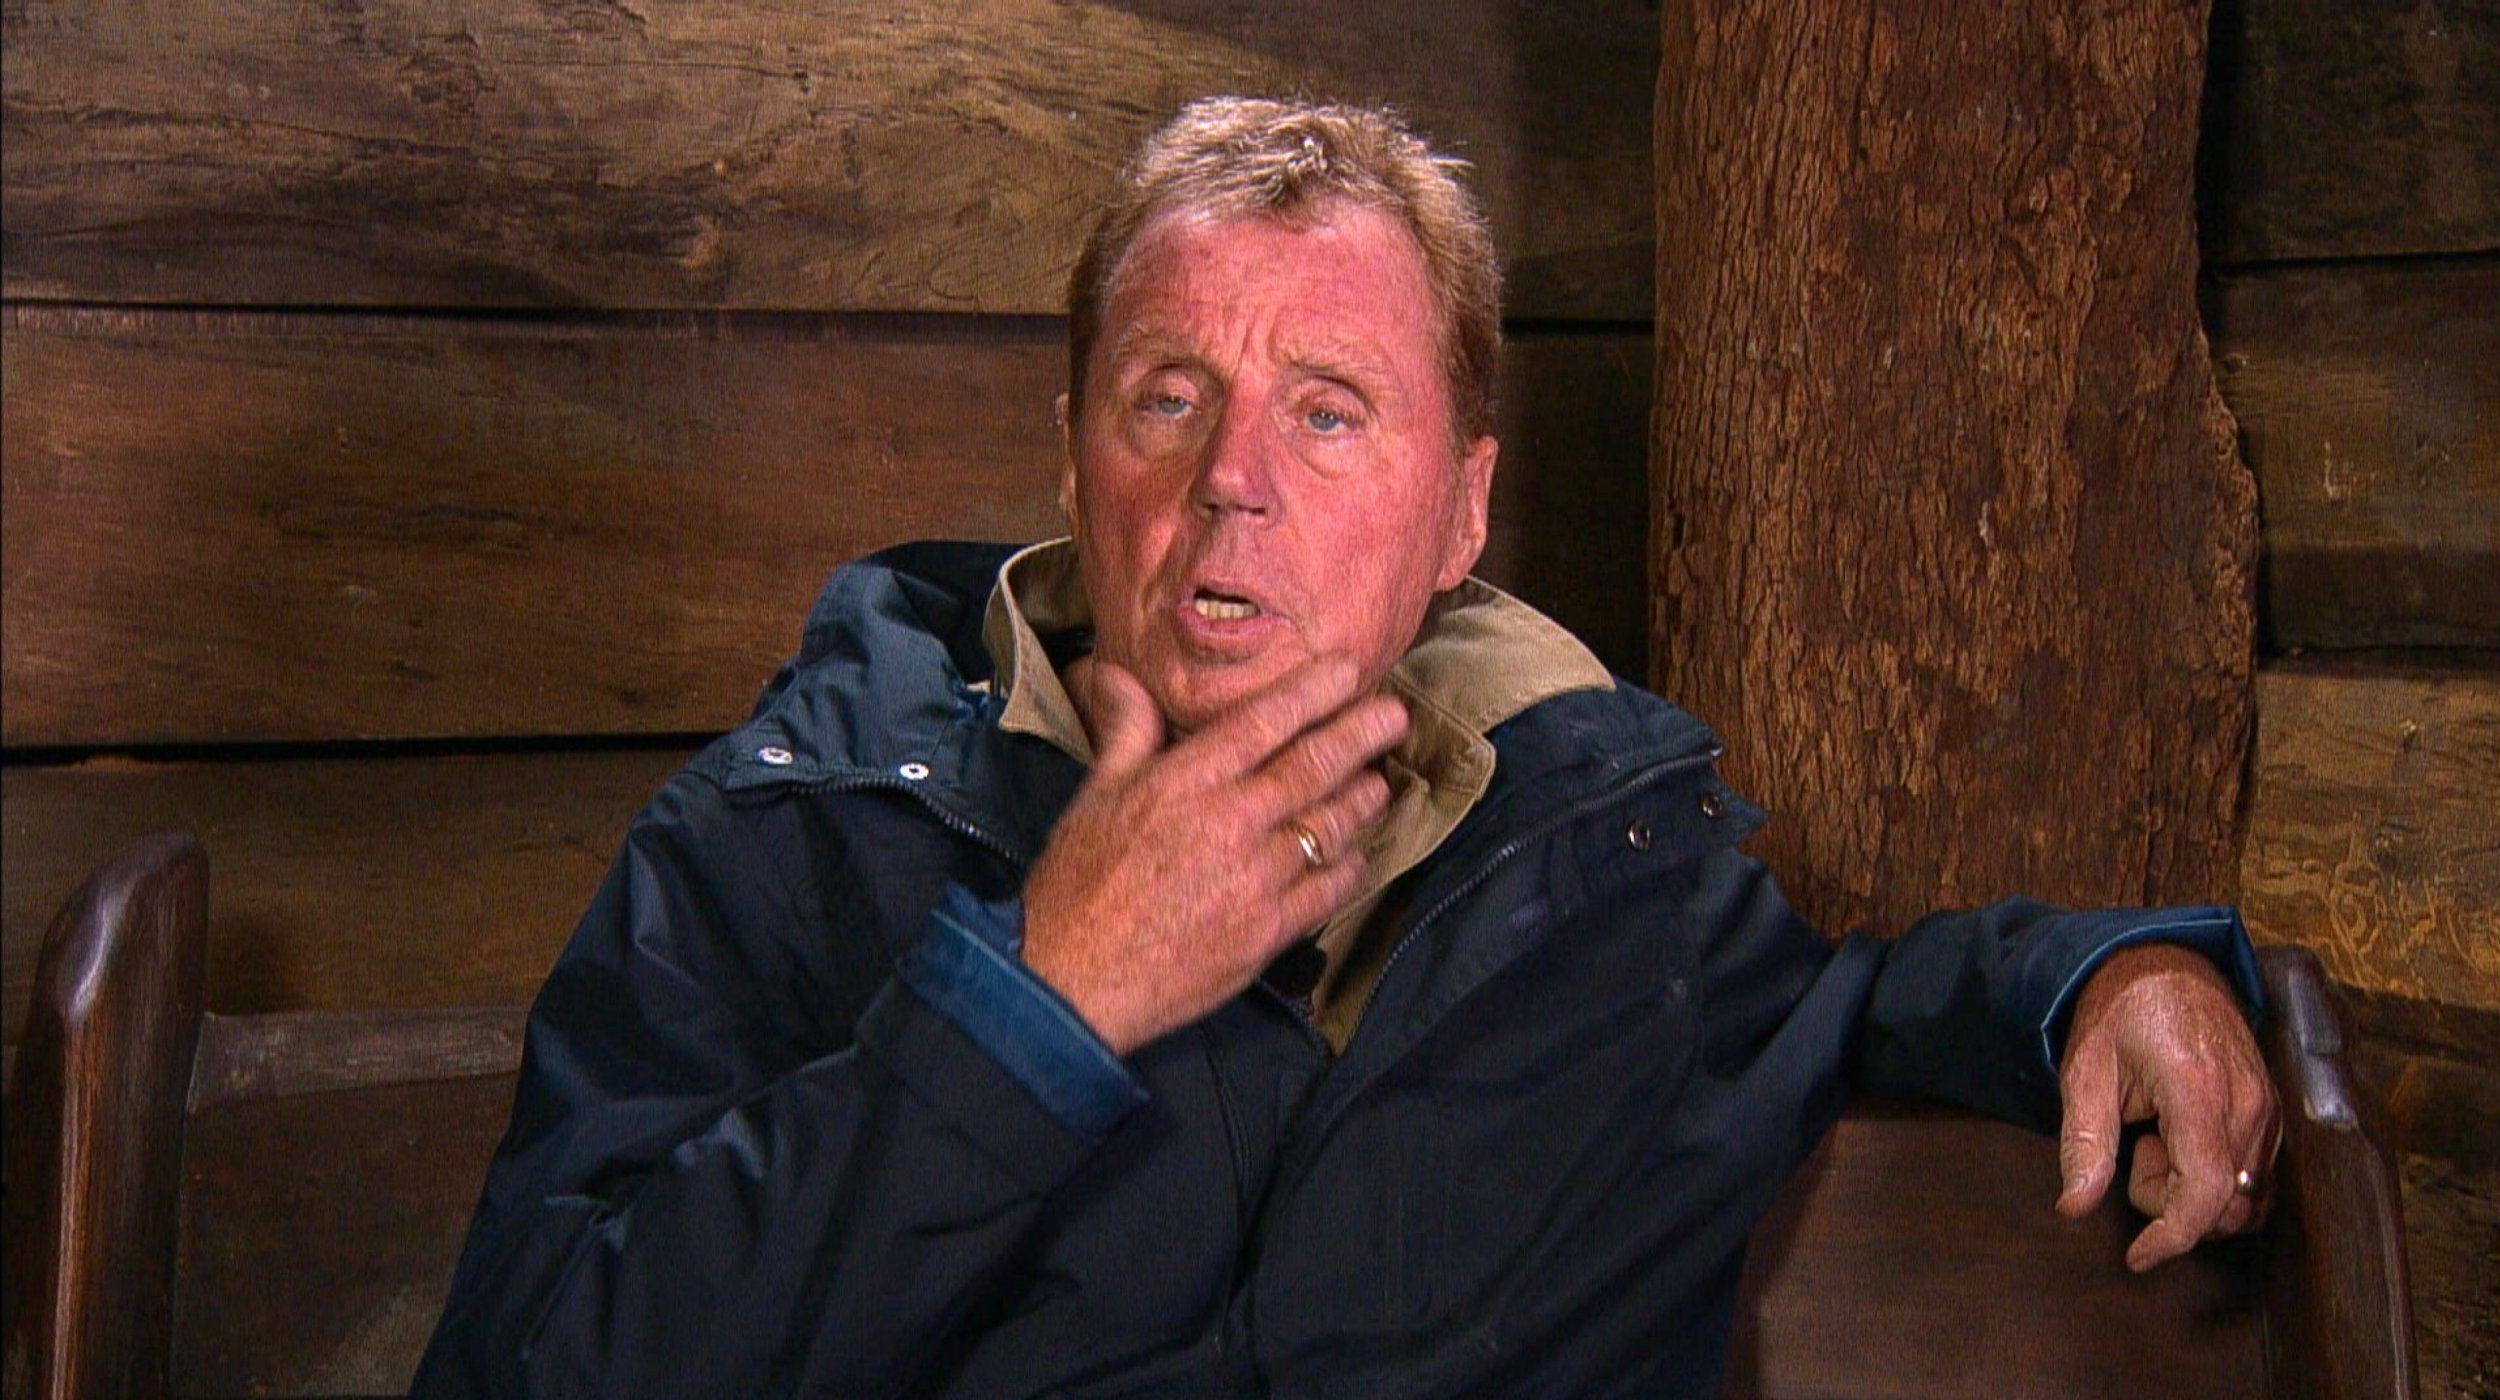 STRICT EMBARGO - NOT TO BE USED BEFORE 22:30 GMT, 05 DEC 2018 - EDITORIAL USE ONLY Mandatory Credit: Photo by ITV/REX (10014166fq) Morning Story and Rita Gets The Chop - Harry Redknapp 'I'm a Celebrity... Get Me Out of Here!' TV Show, Series 18, Australia - 05 Dec 2018